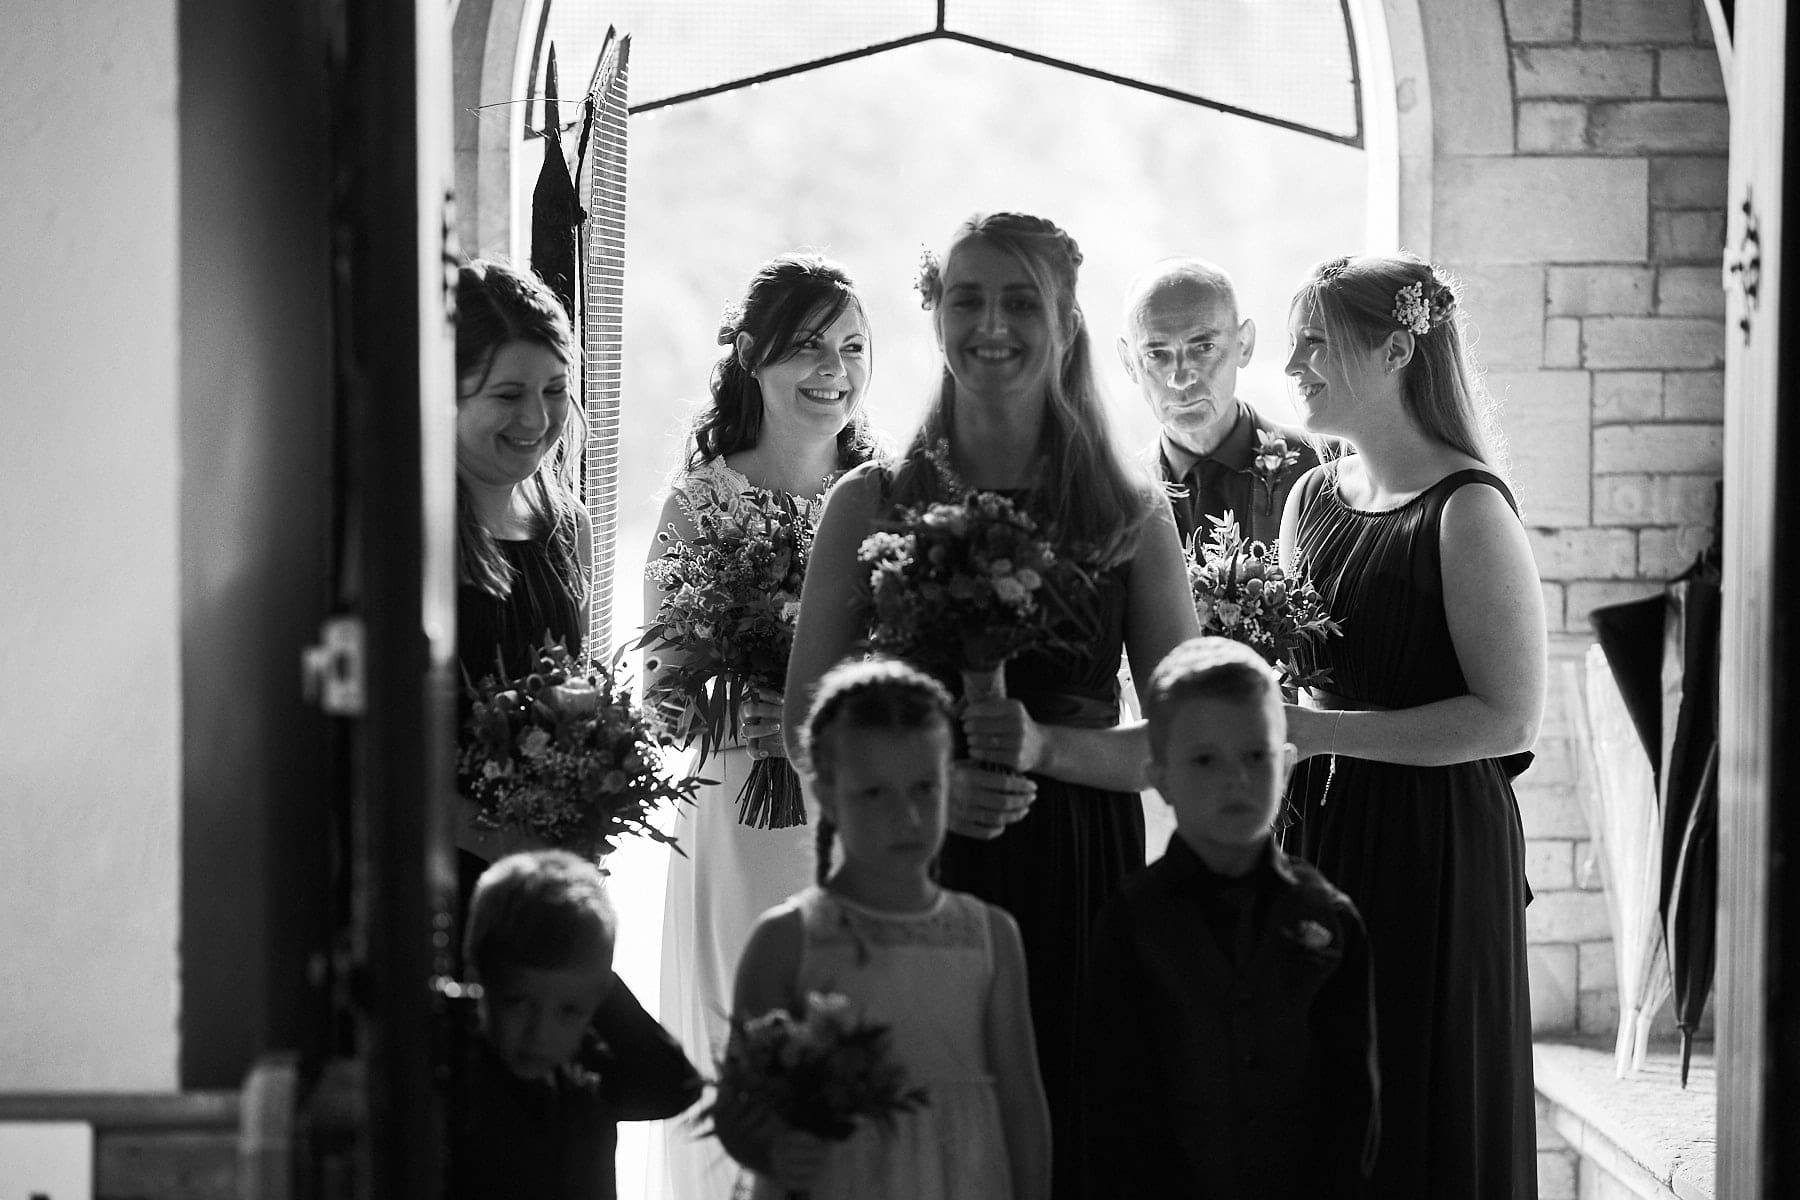 A bride and her party pause in the door of the church on her wedding day at Kirkby on Bain Church